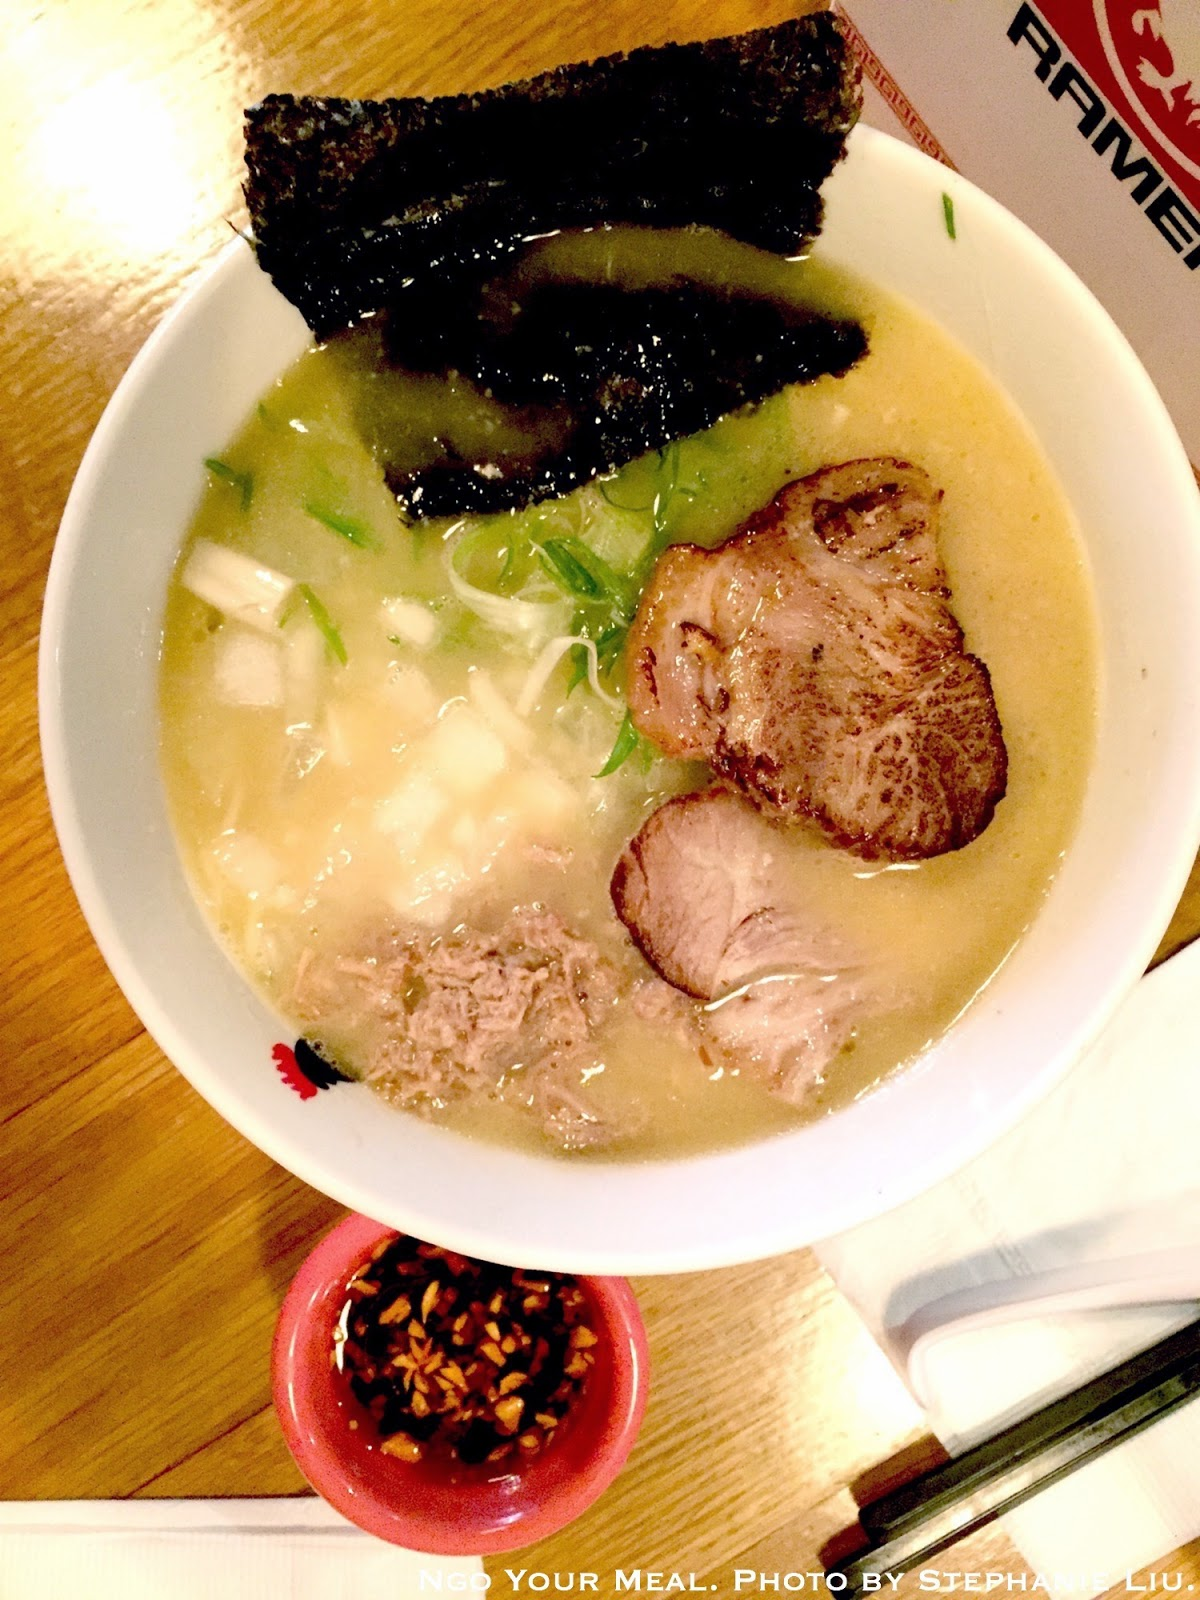 Paitan Ramen: These straight homemade noodles are cooked al dente style in a whole chicken and premium soy sauce based soup topped with scallion, onion and a nori at Totto Ramen.